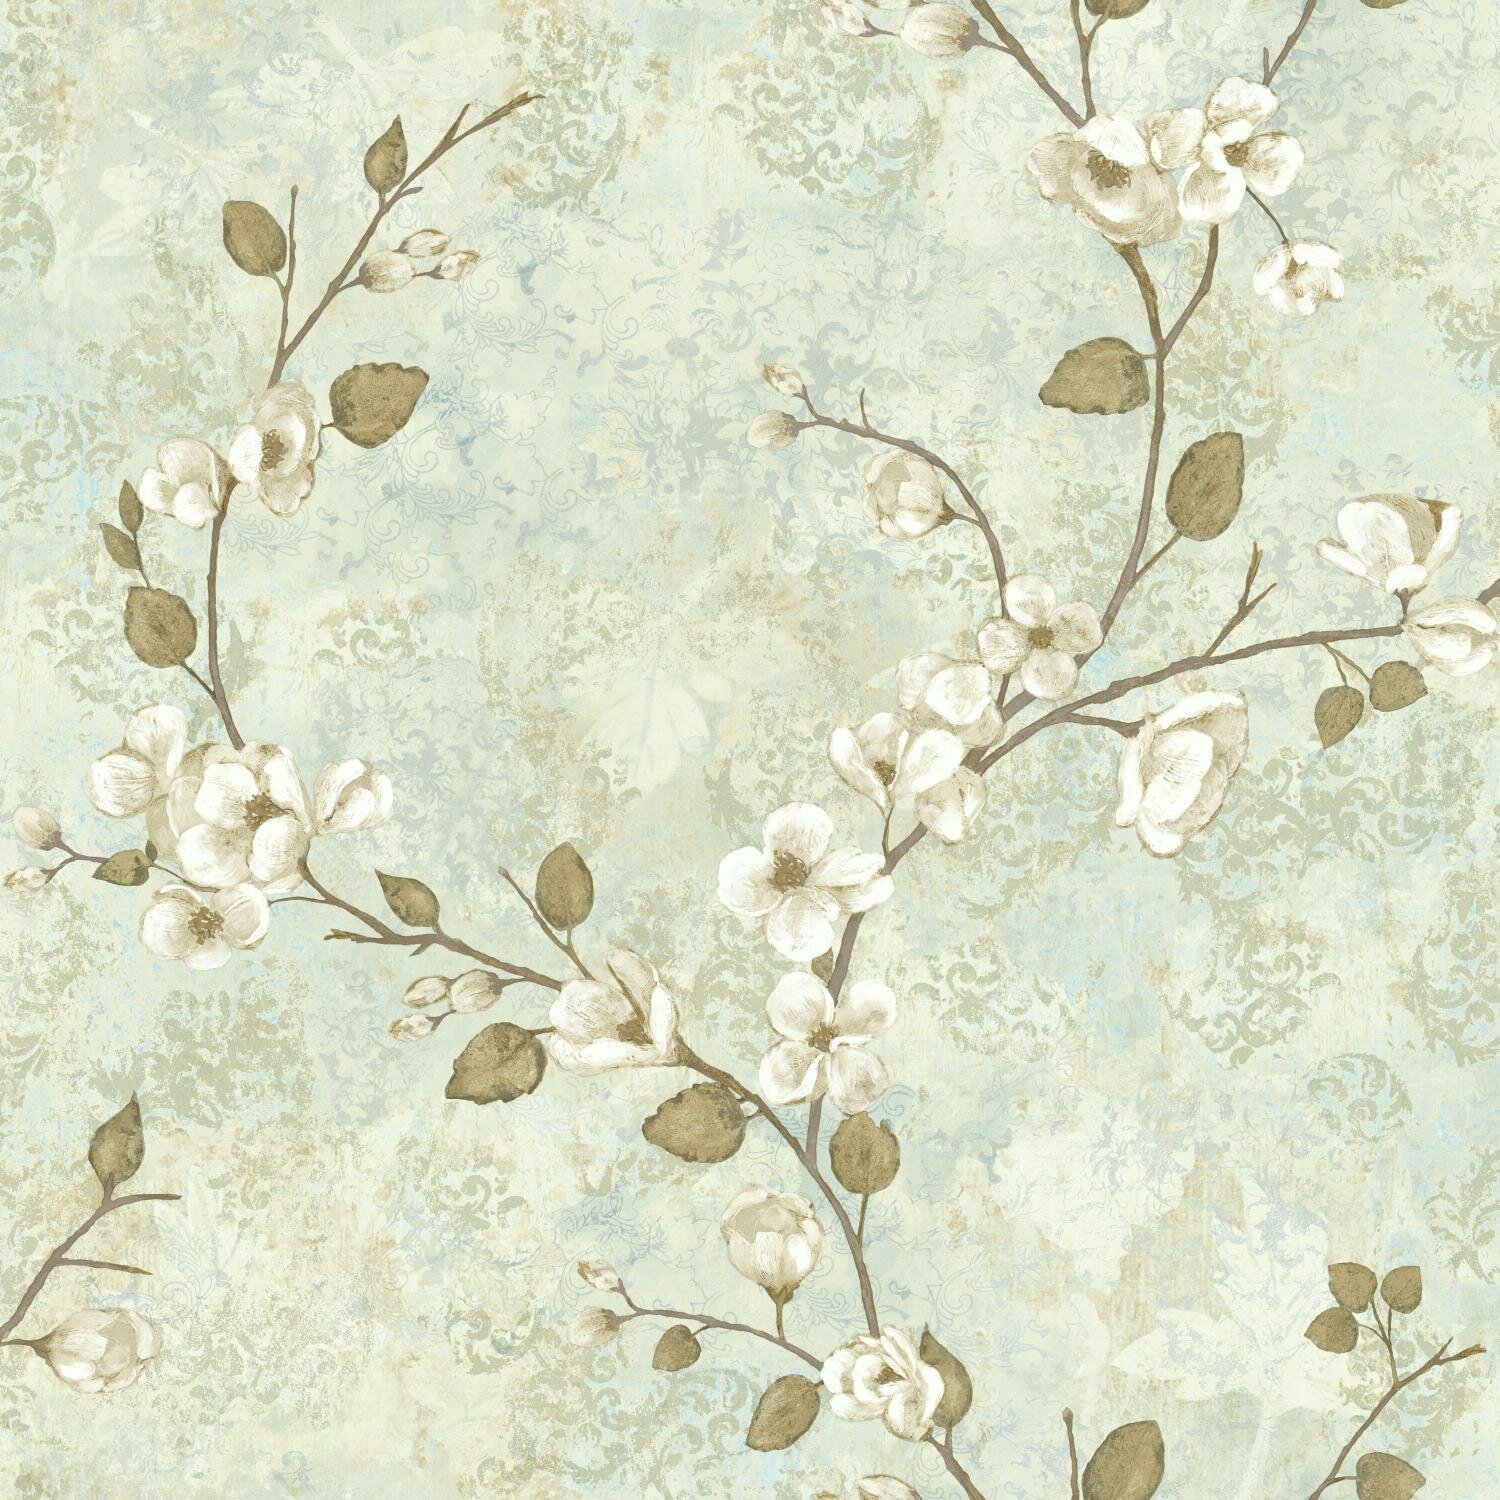 Ophelia Co Hiltz 33 X 20 5 Dogwood Floral Wallpaper Roll